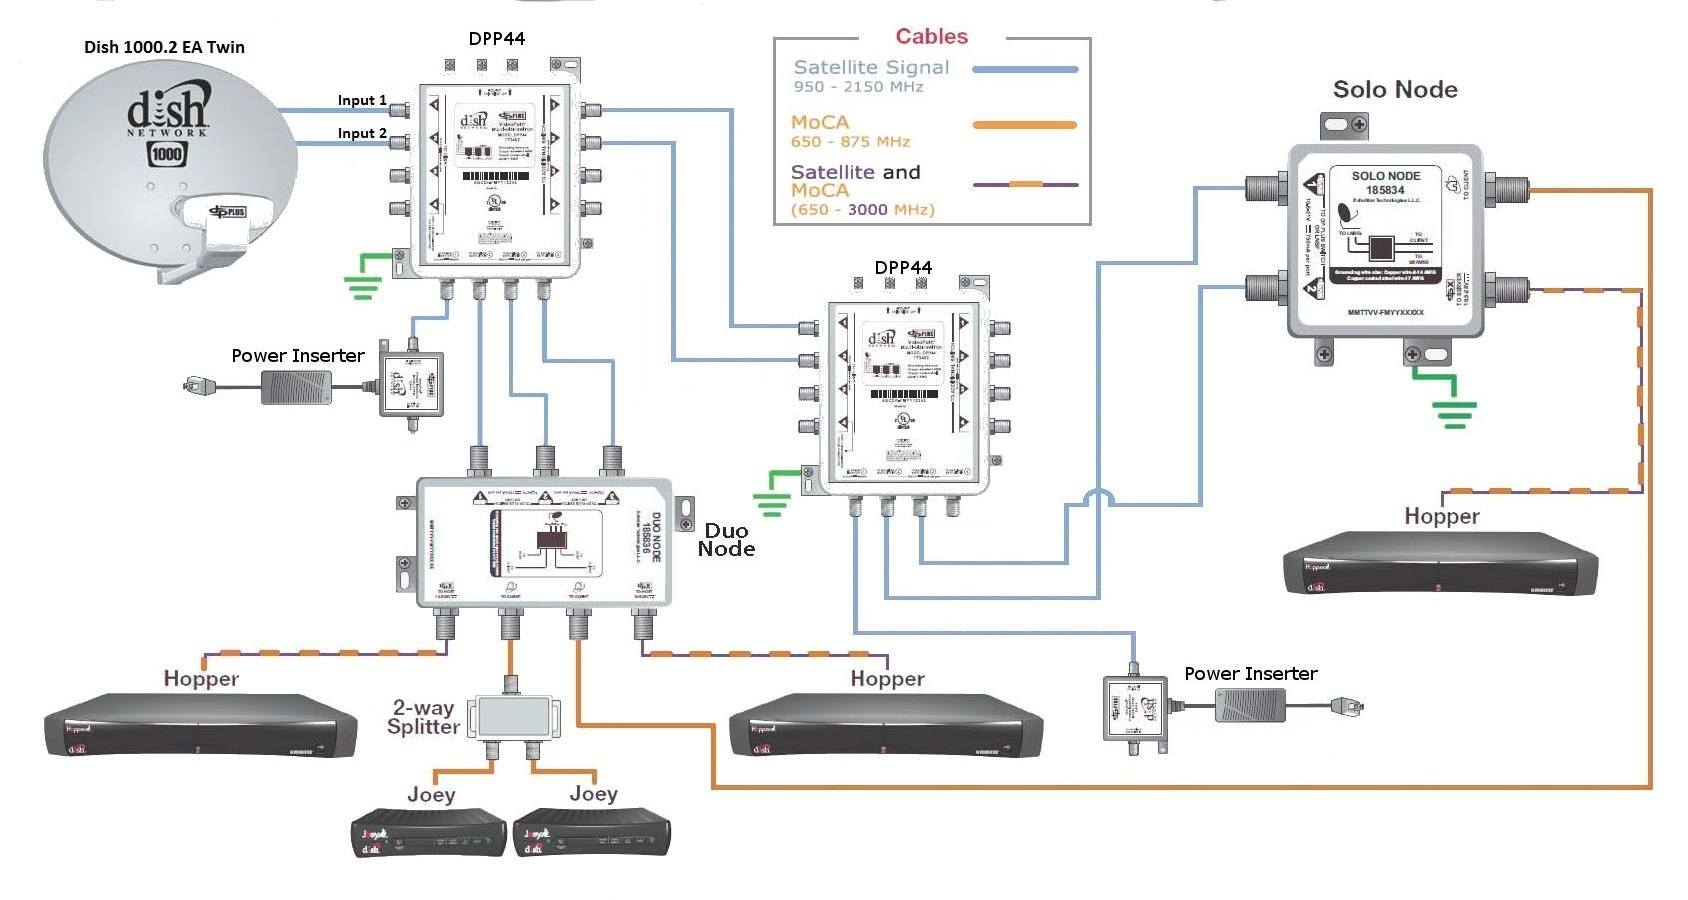 dish network wiring diagram efcaviation com dish network wiring diagrams dual tuner at n-0.co